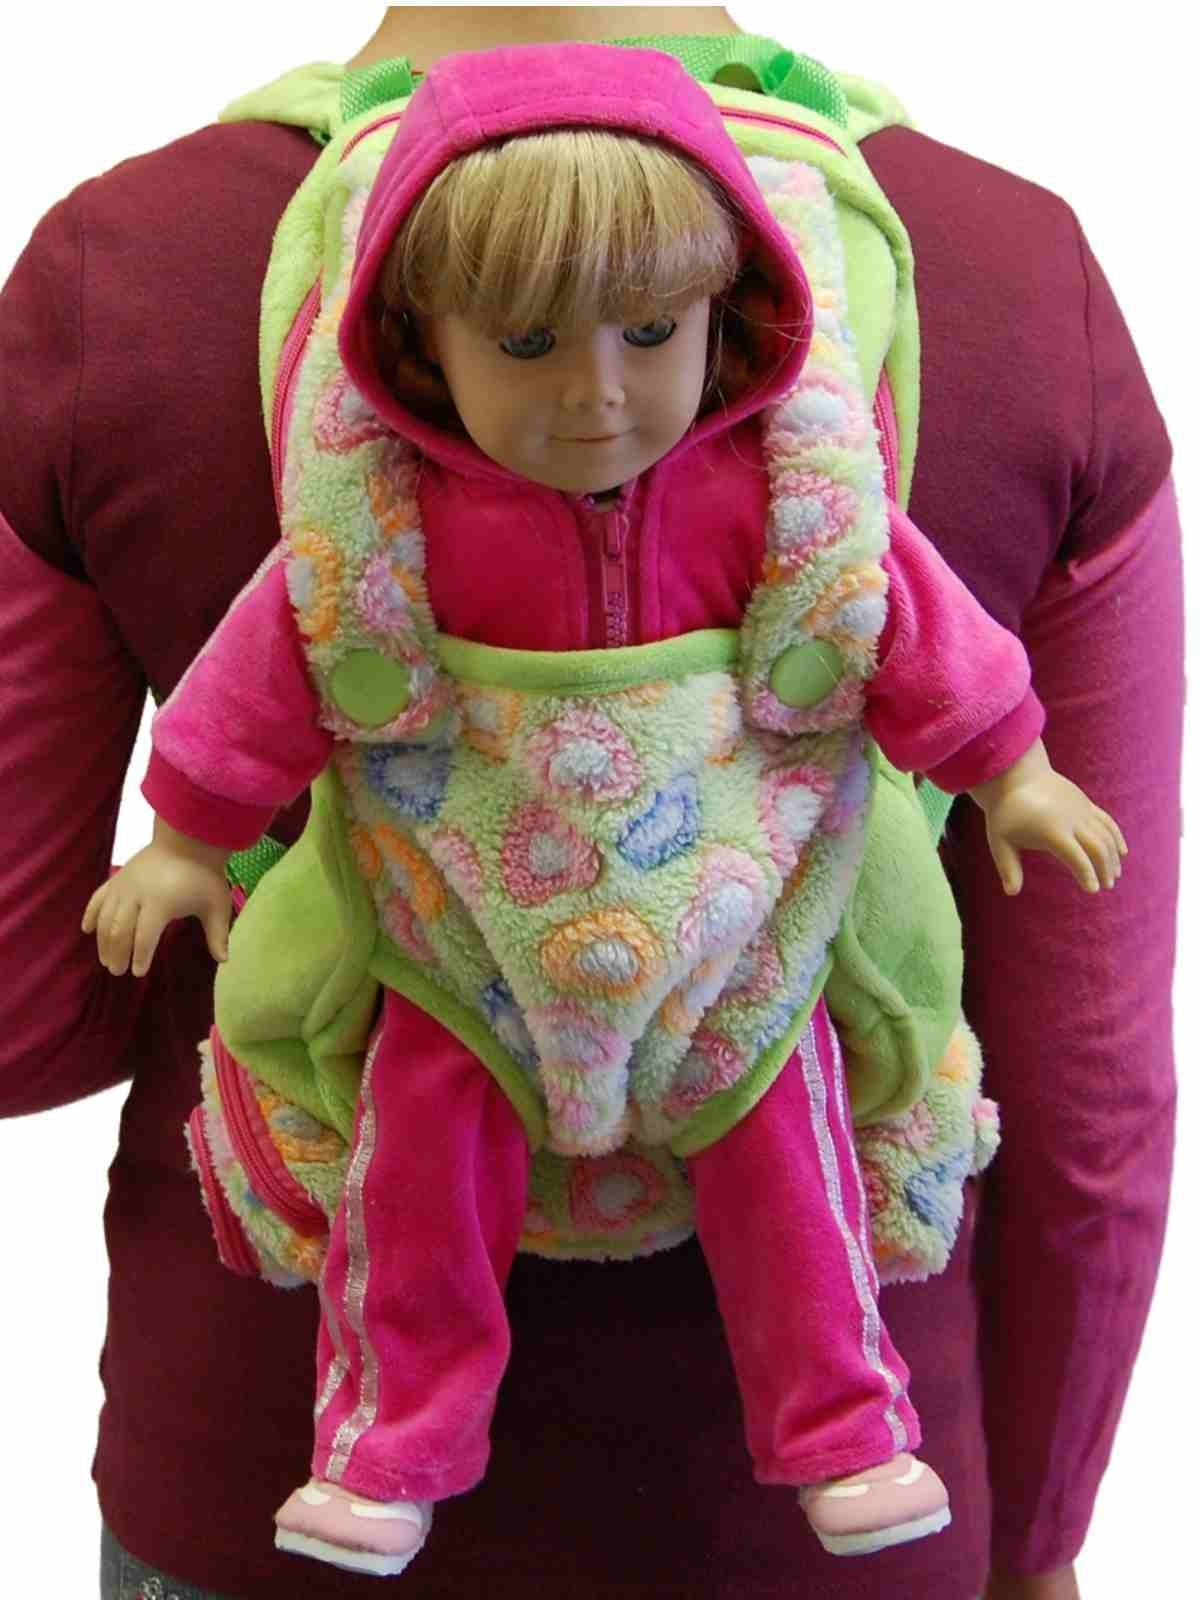 Childs Backpack Includes 18 Quot Doll Carrier And Sleeping Bag